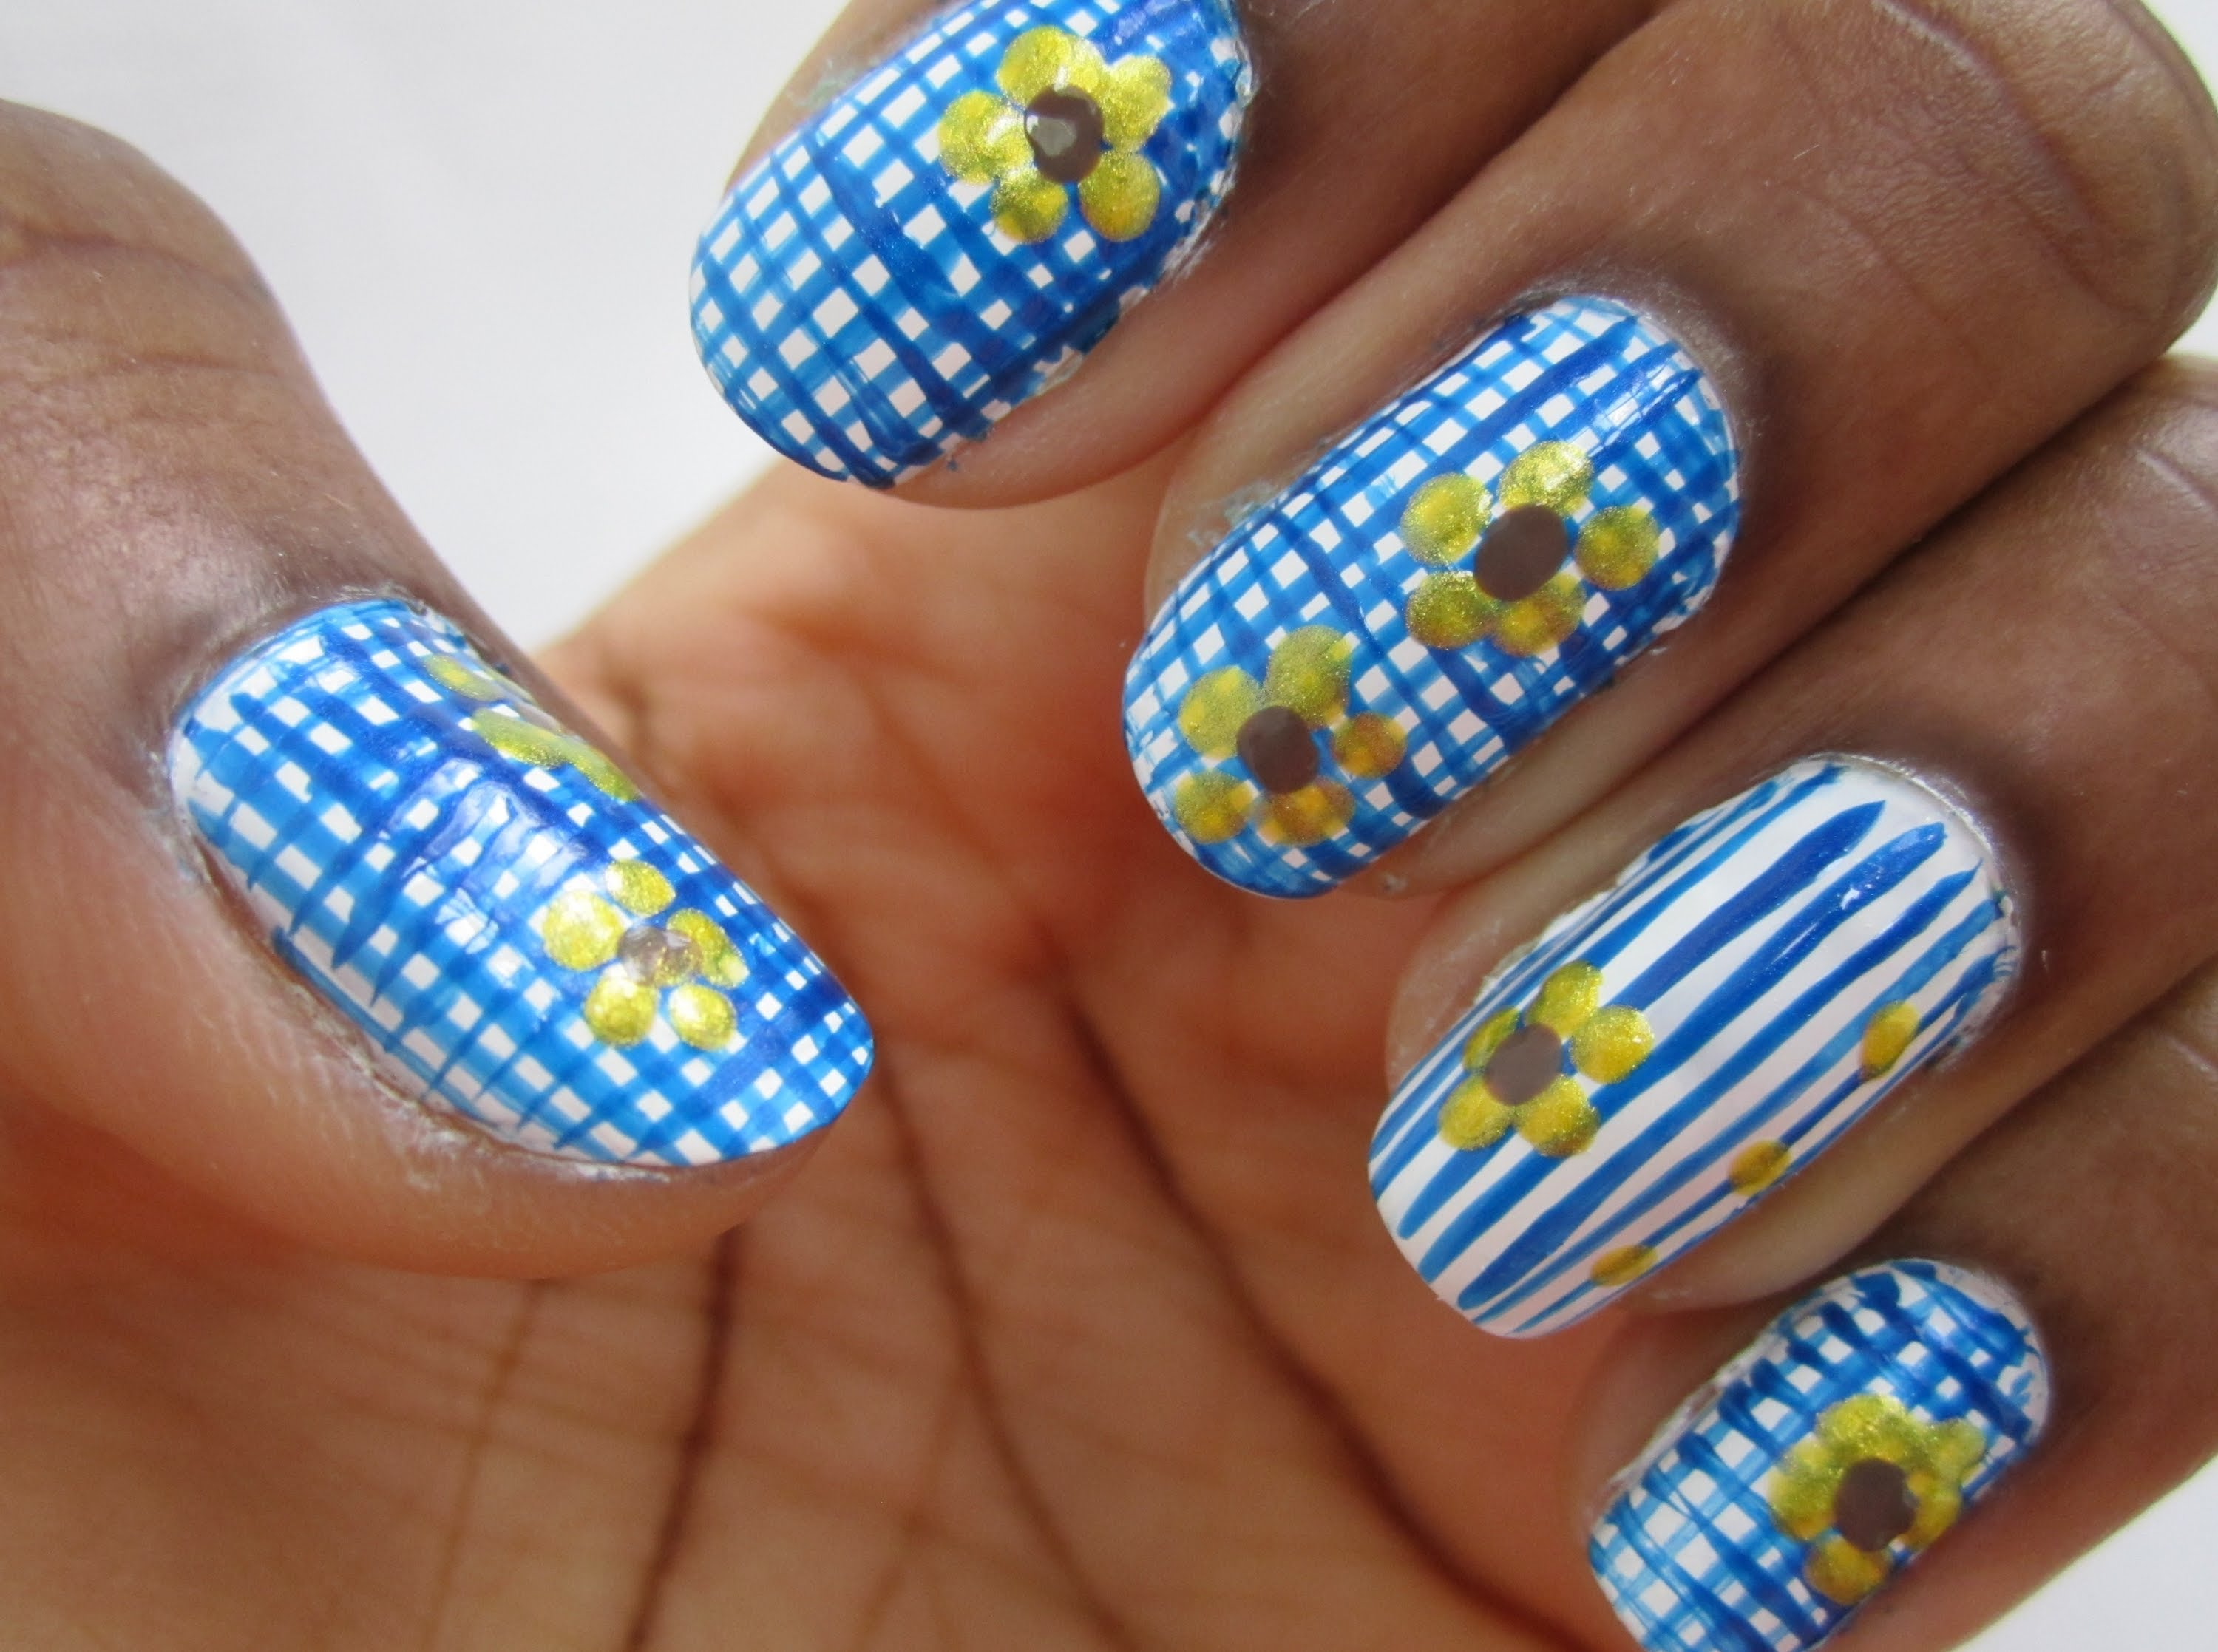 Blue Gingham Nail Art With Floral Design With Tutorial Video